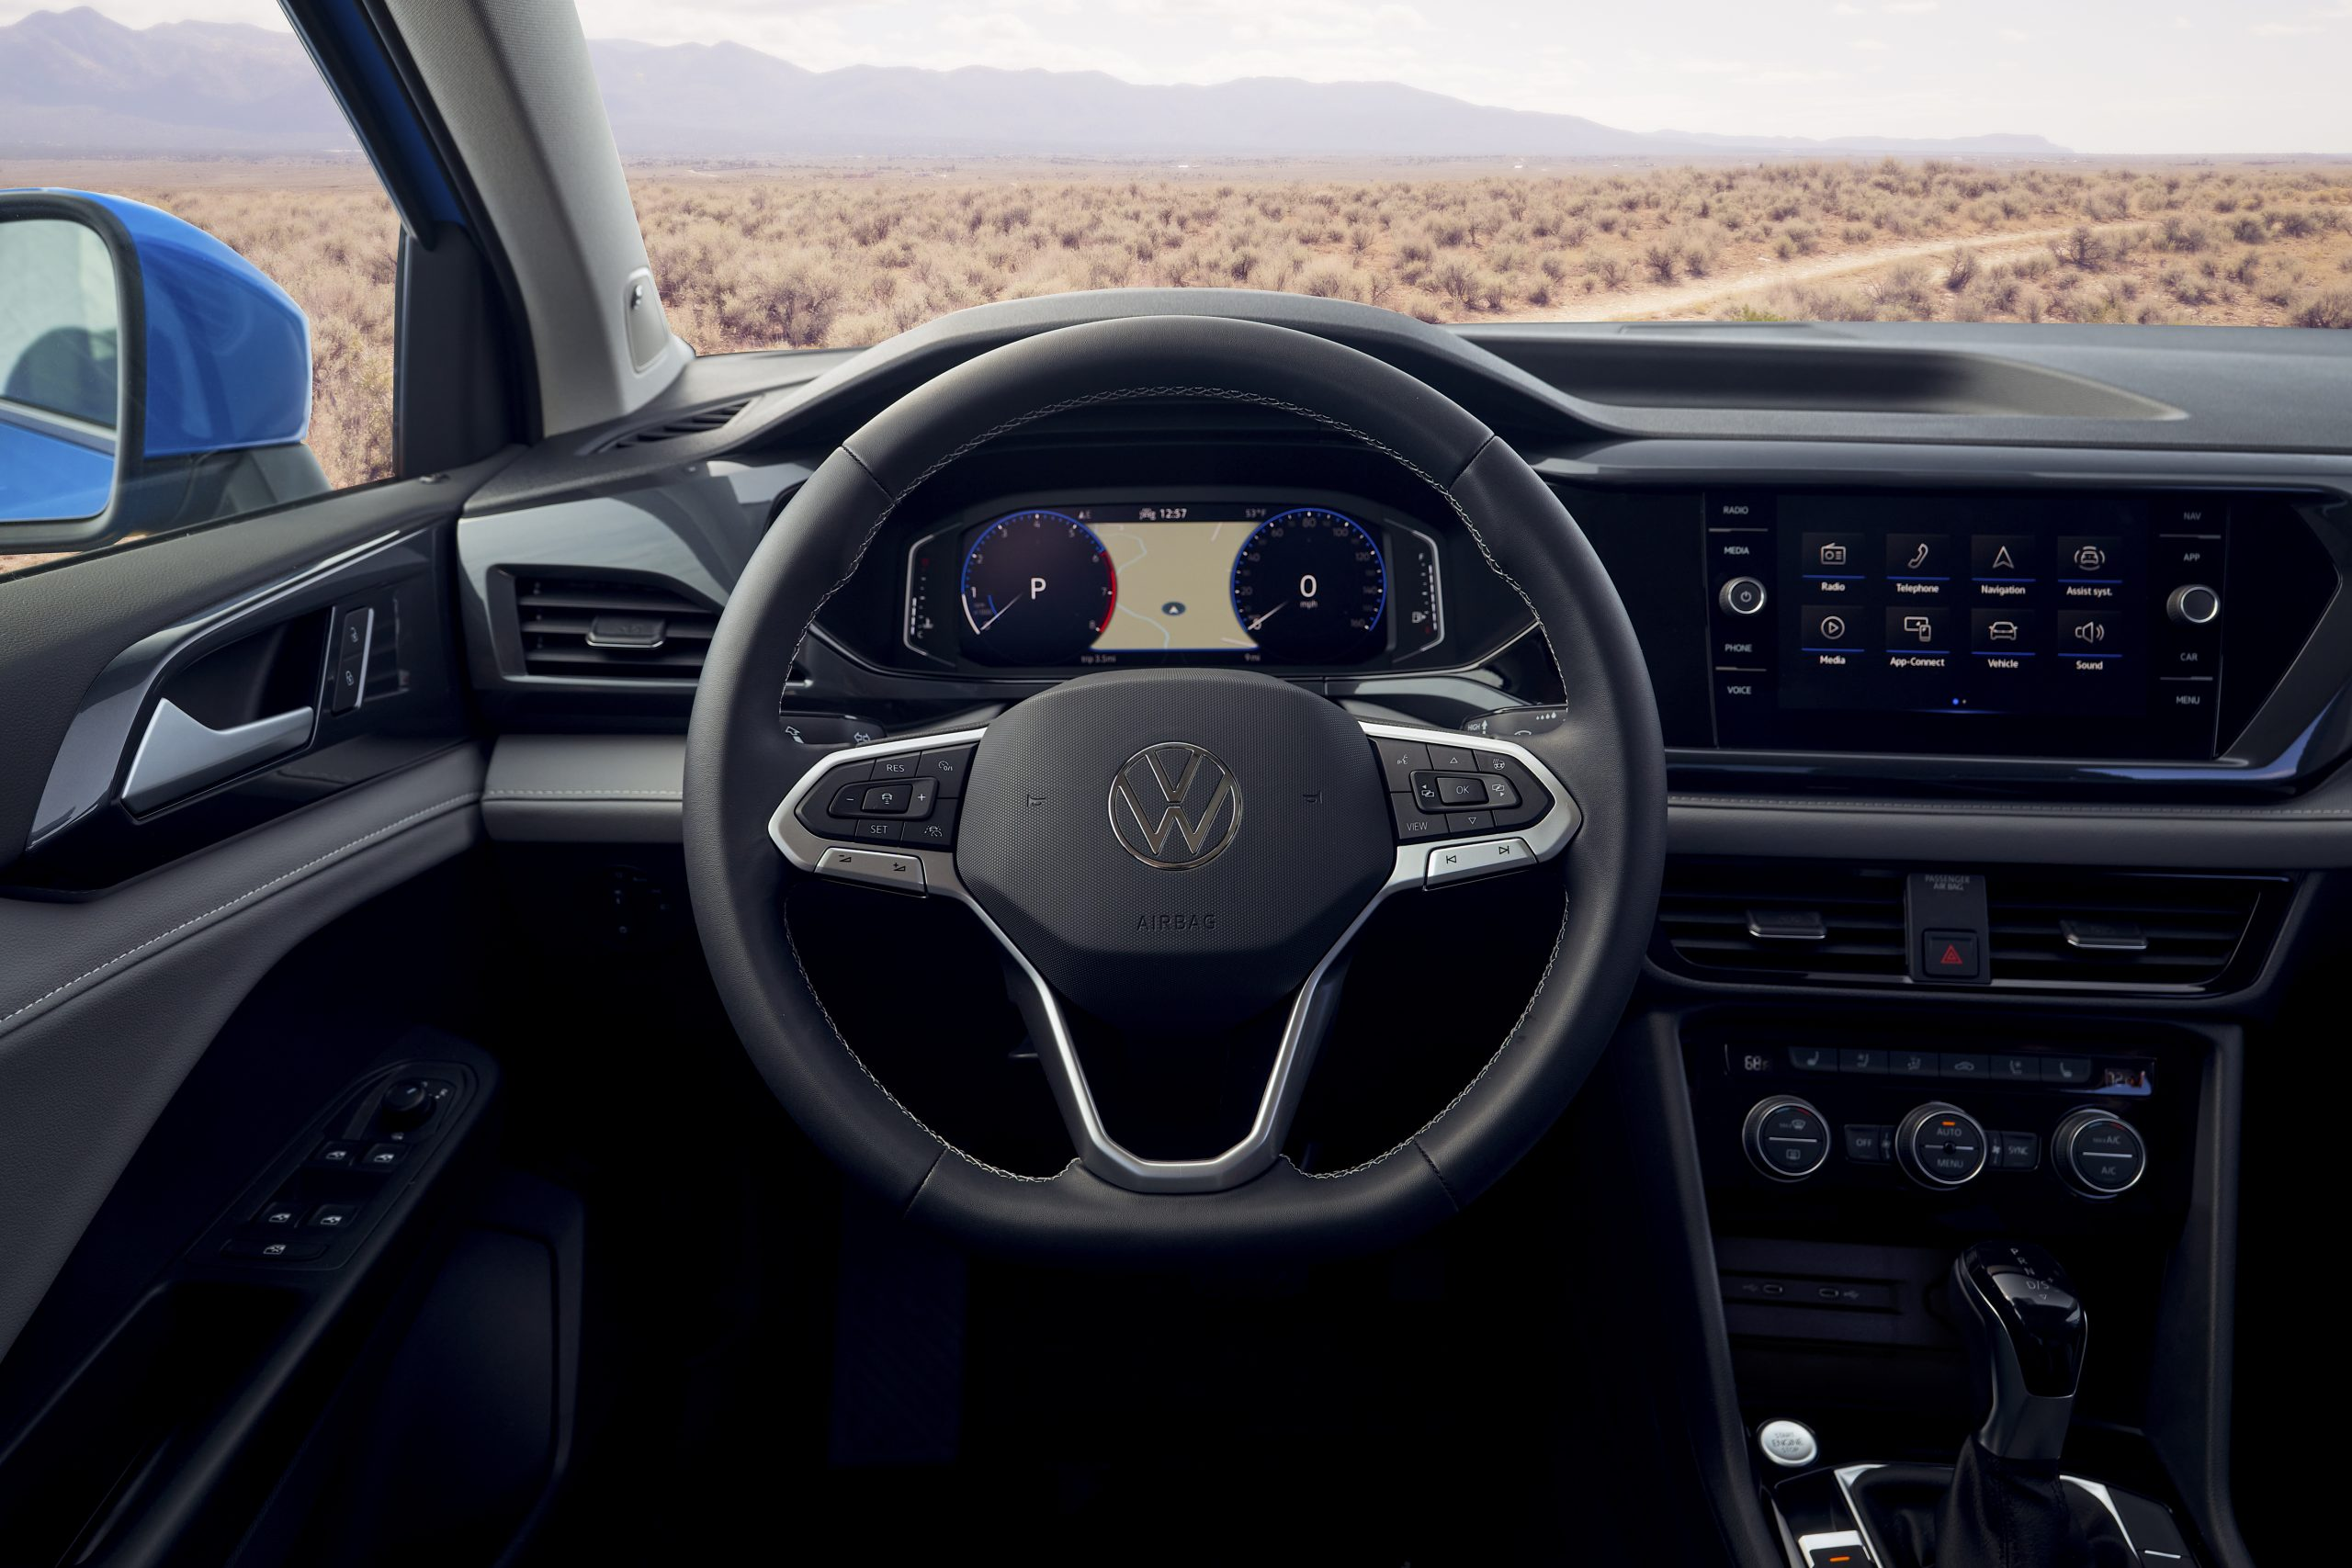 2022 Volkswagen Taos view from drivers seat